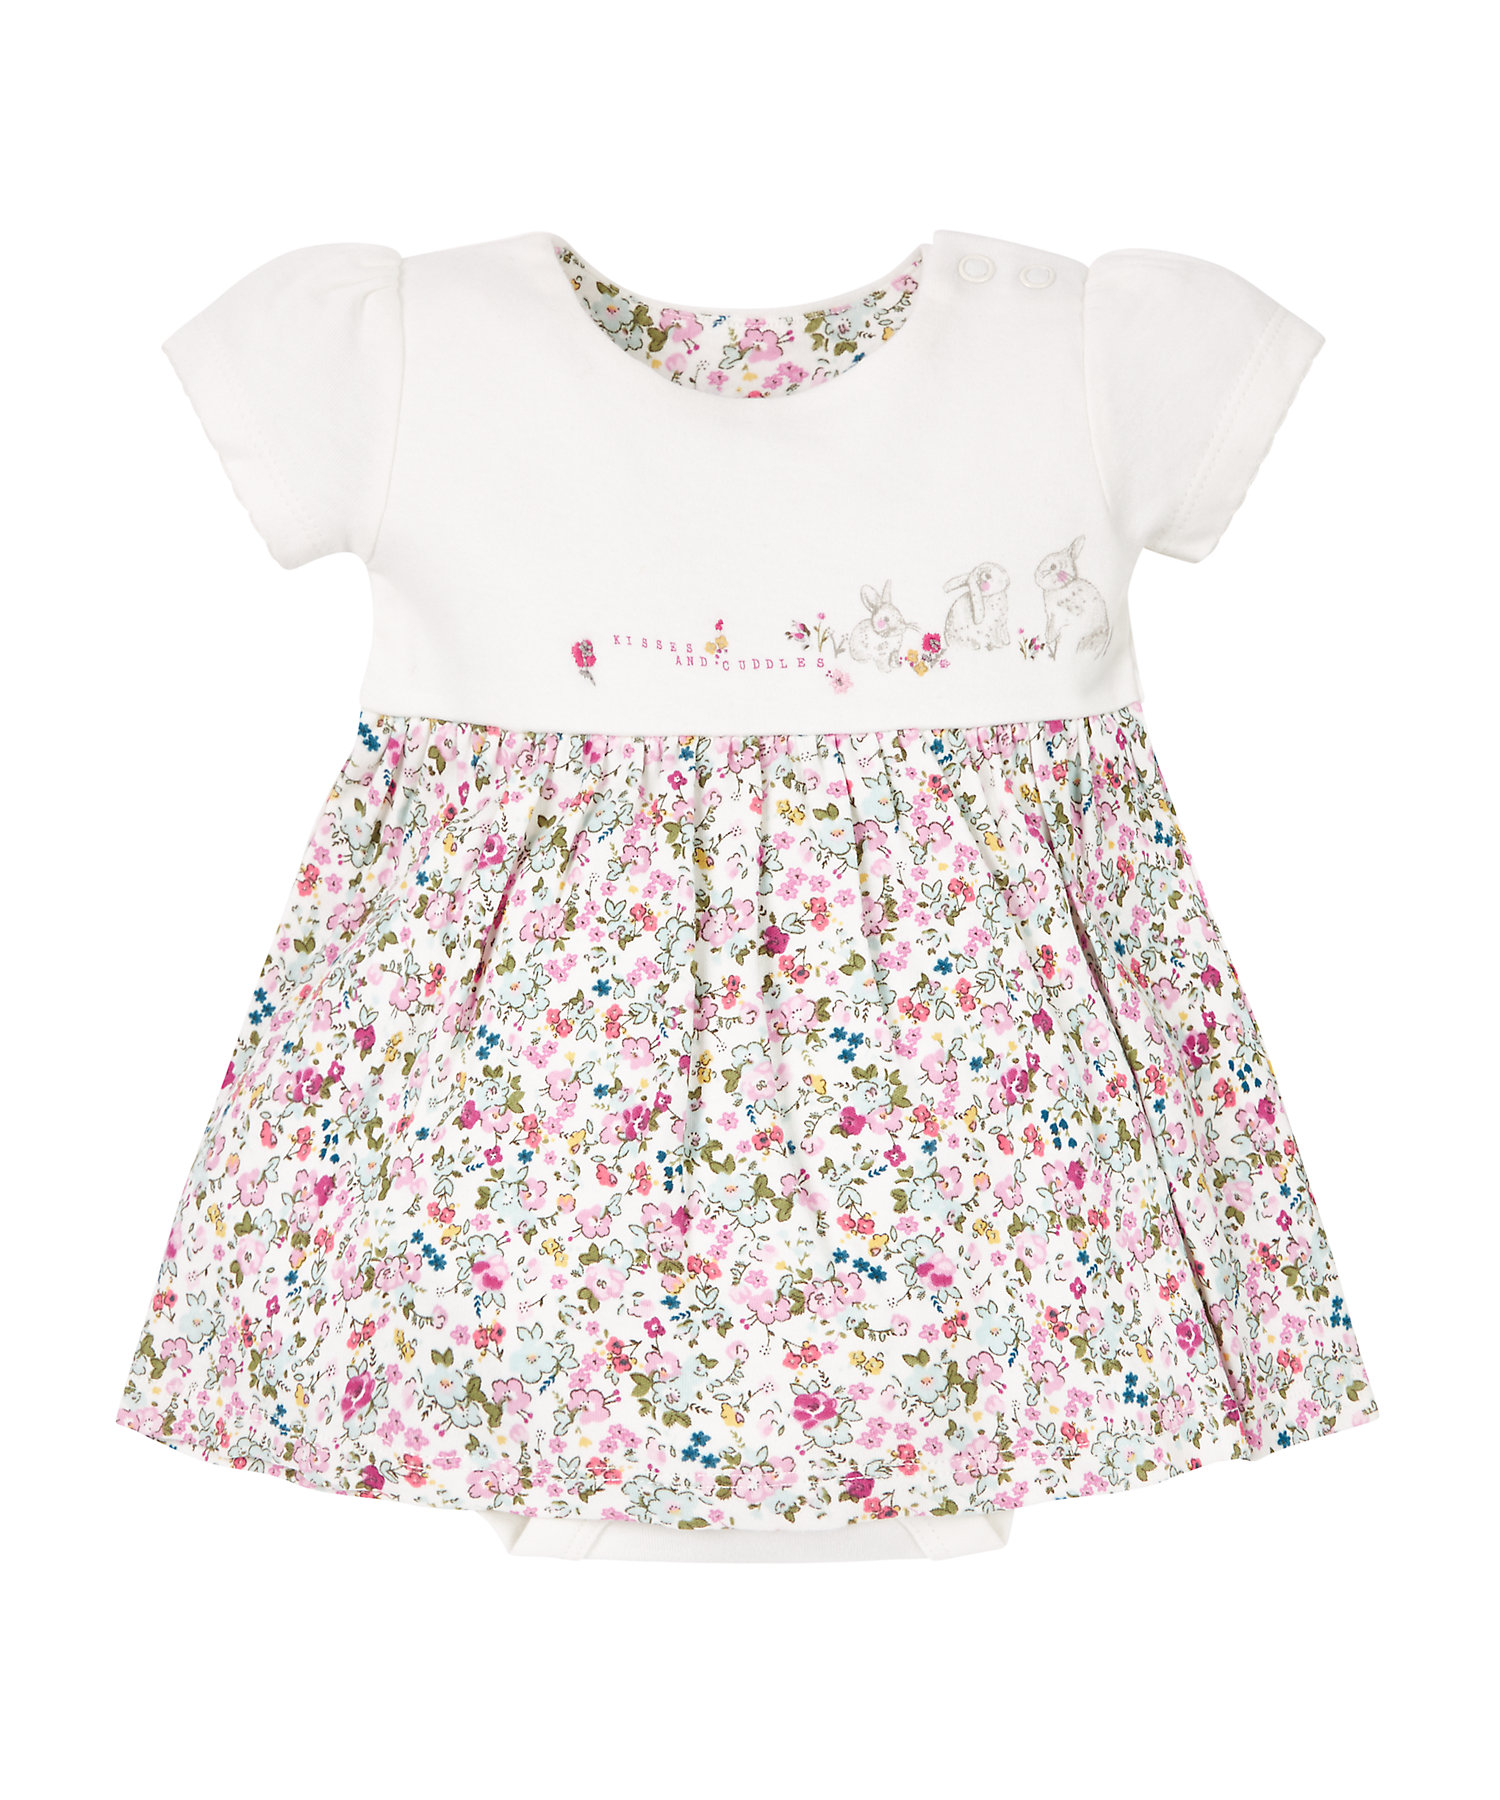 Mothercare | Girls Half Sleeves Romper Dress Floral Print And Embroidery - Multicolor